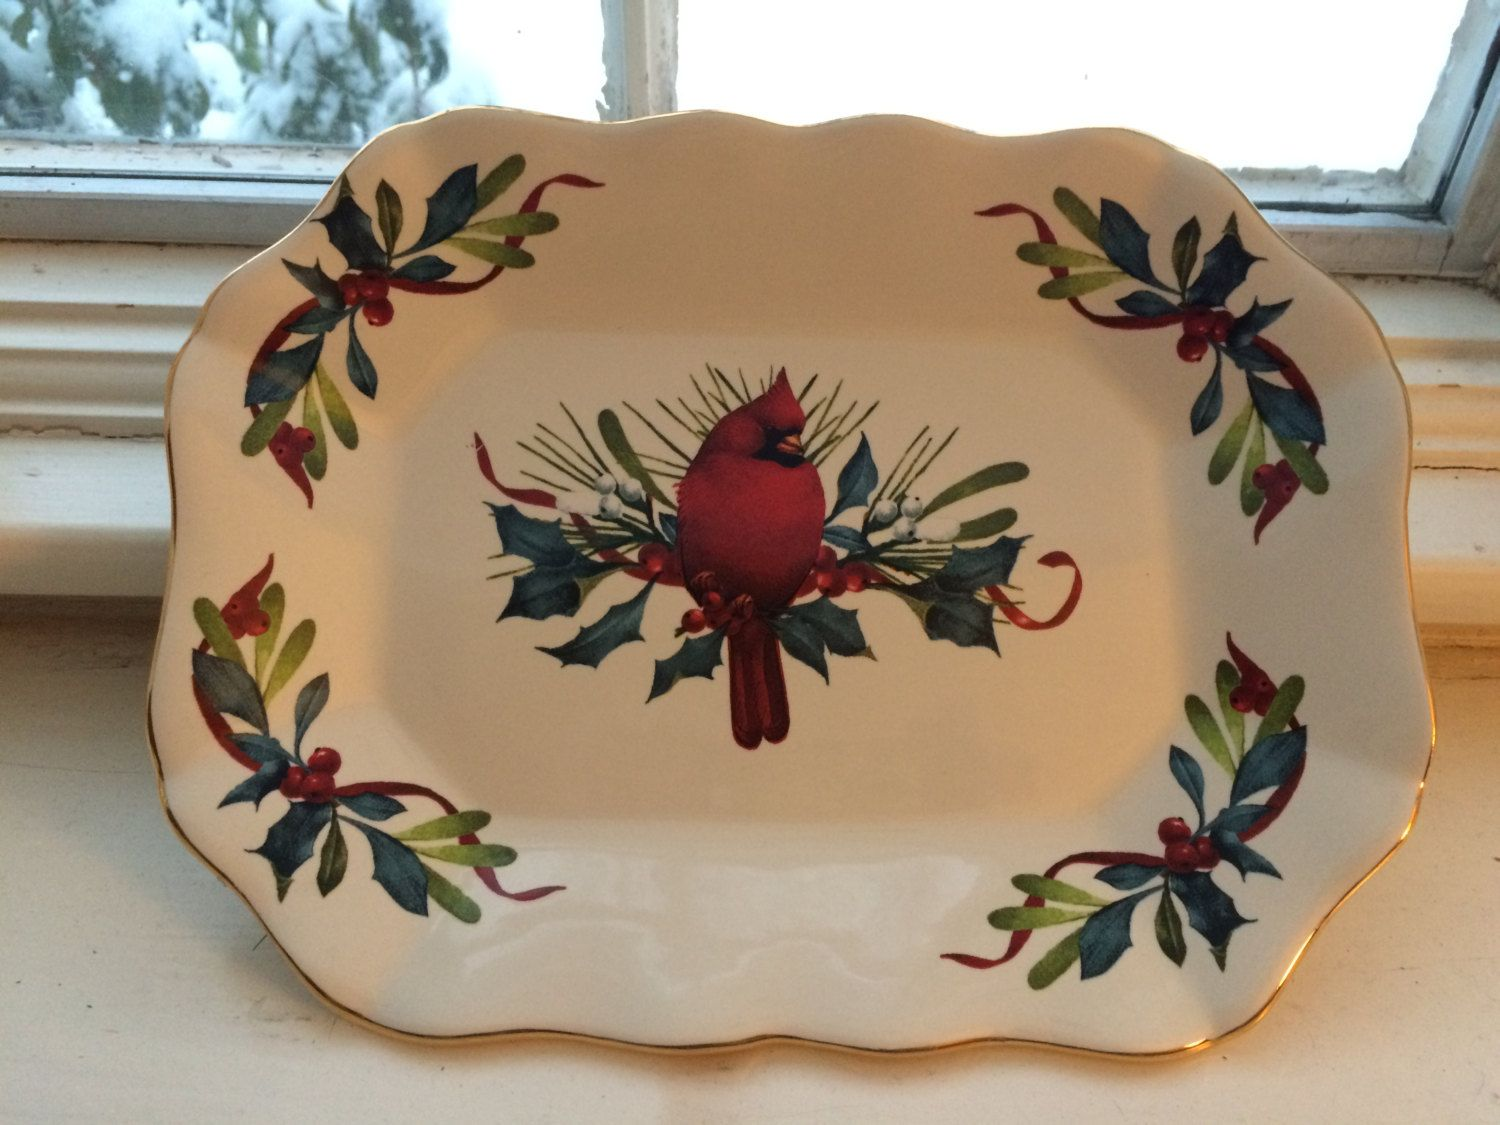 Winter greetings serving plate with cardinal by lenox by winter greetings serving plate with cardinal by lenox by janetsvintagefinds on etsy kristyandbryce Choice Image